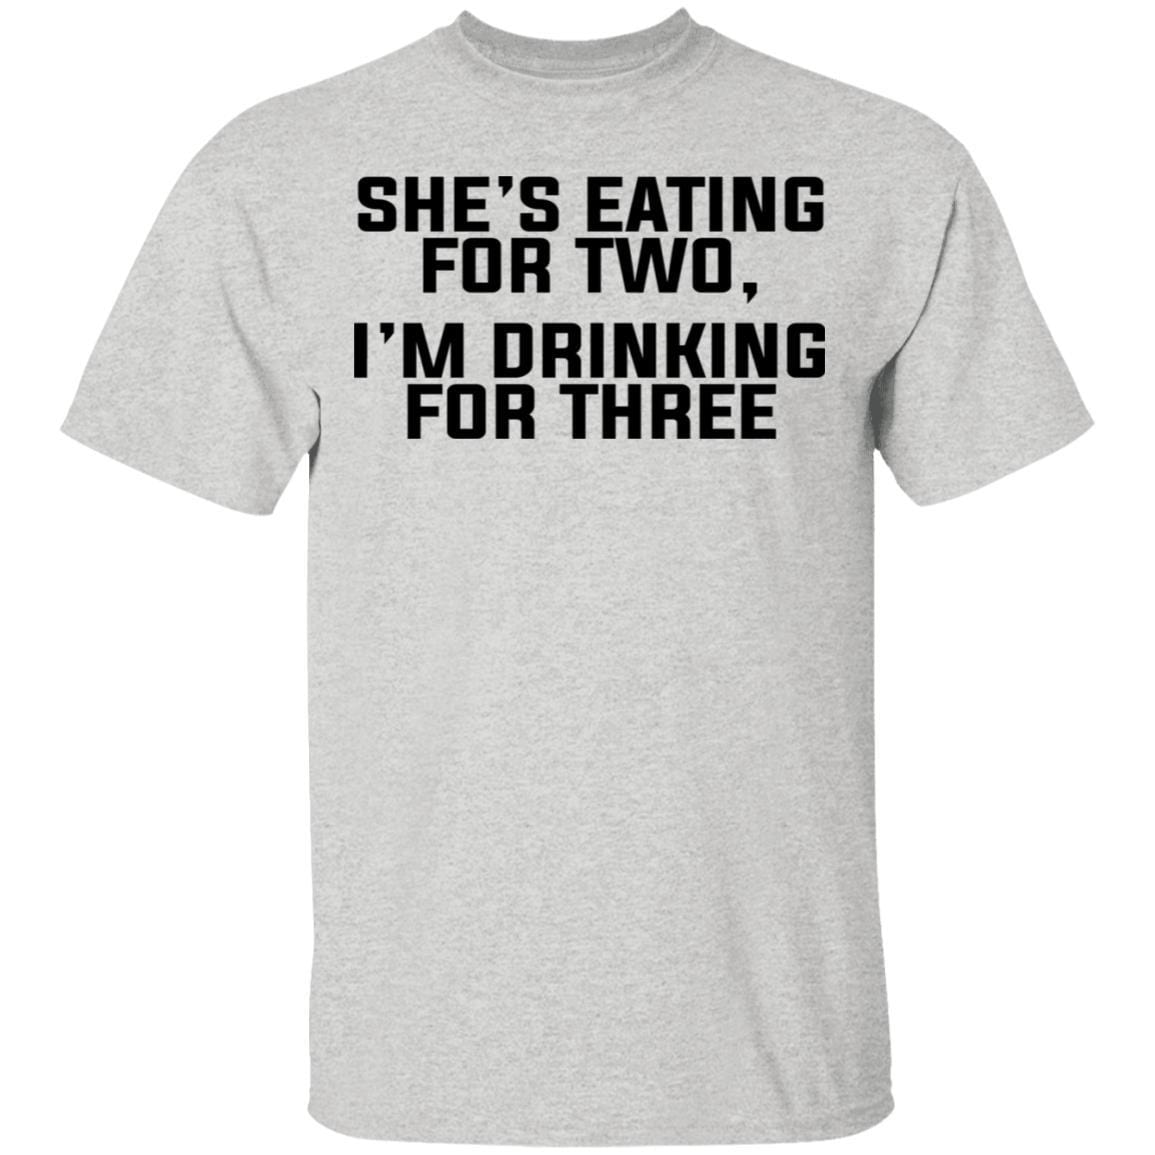 She's Eating For Two I'm Drinking For Three T-Shirts, Hoodies 1049-9952-86894819-48184 - Tee Ript